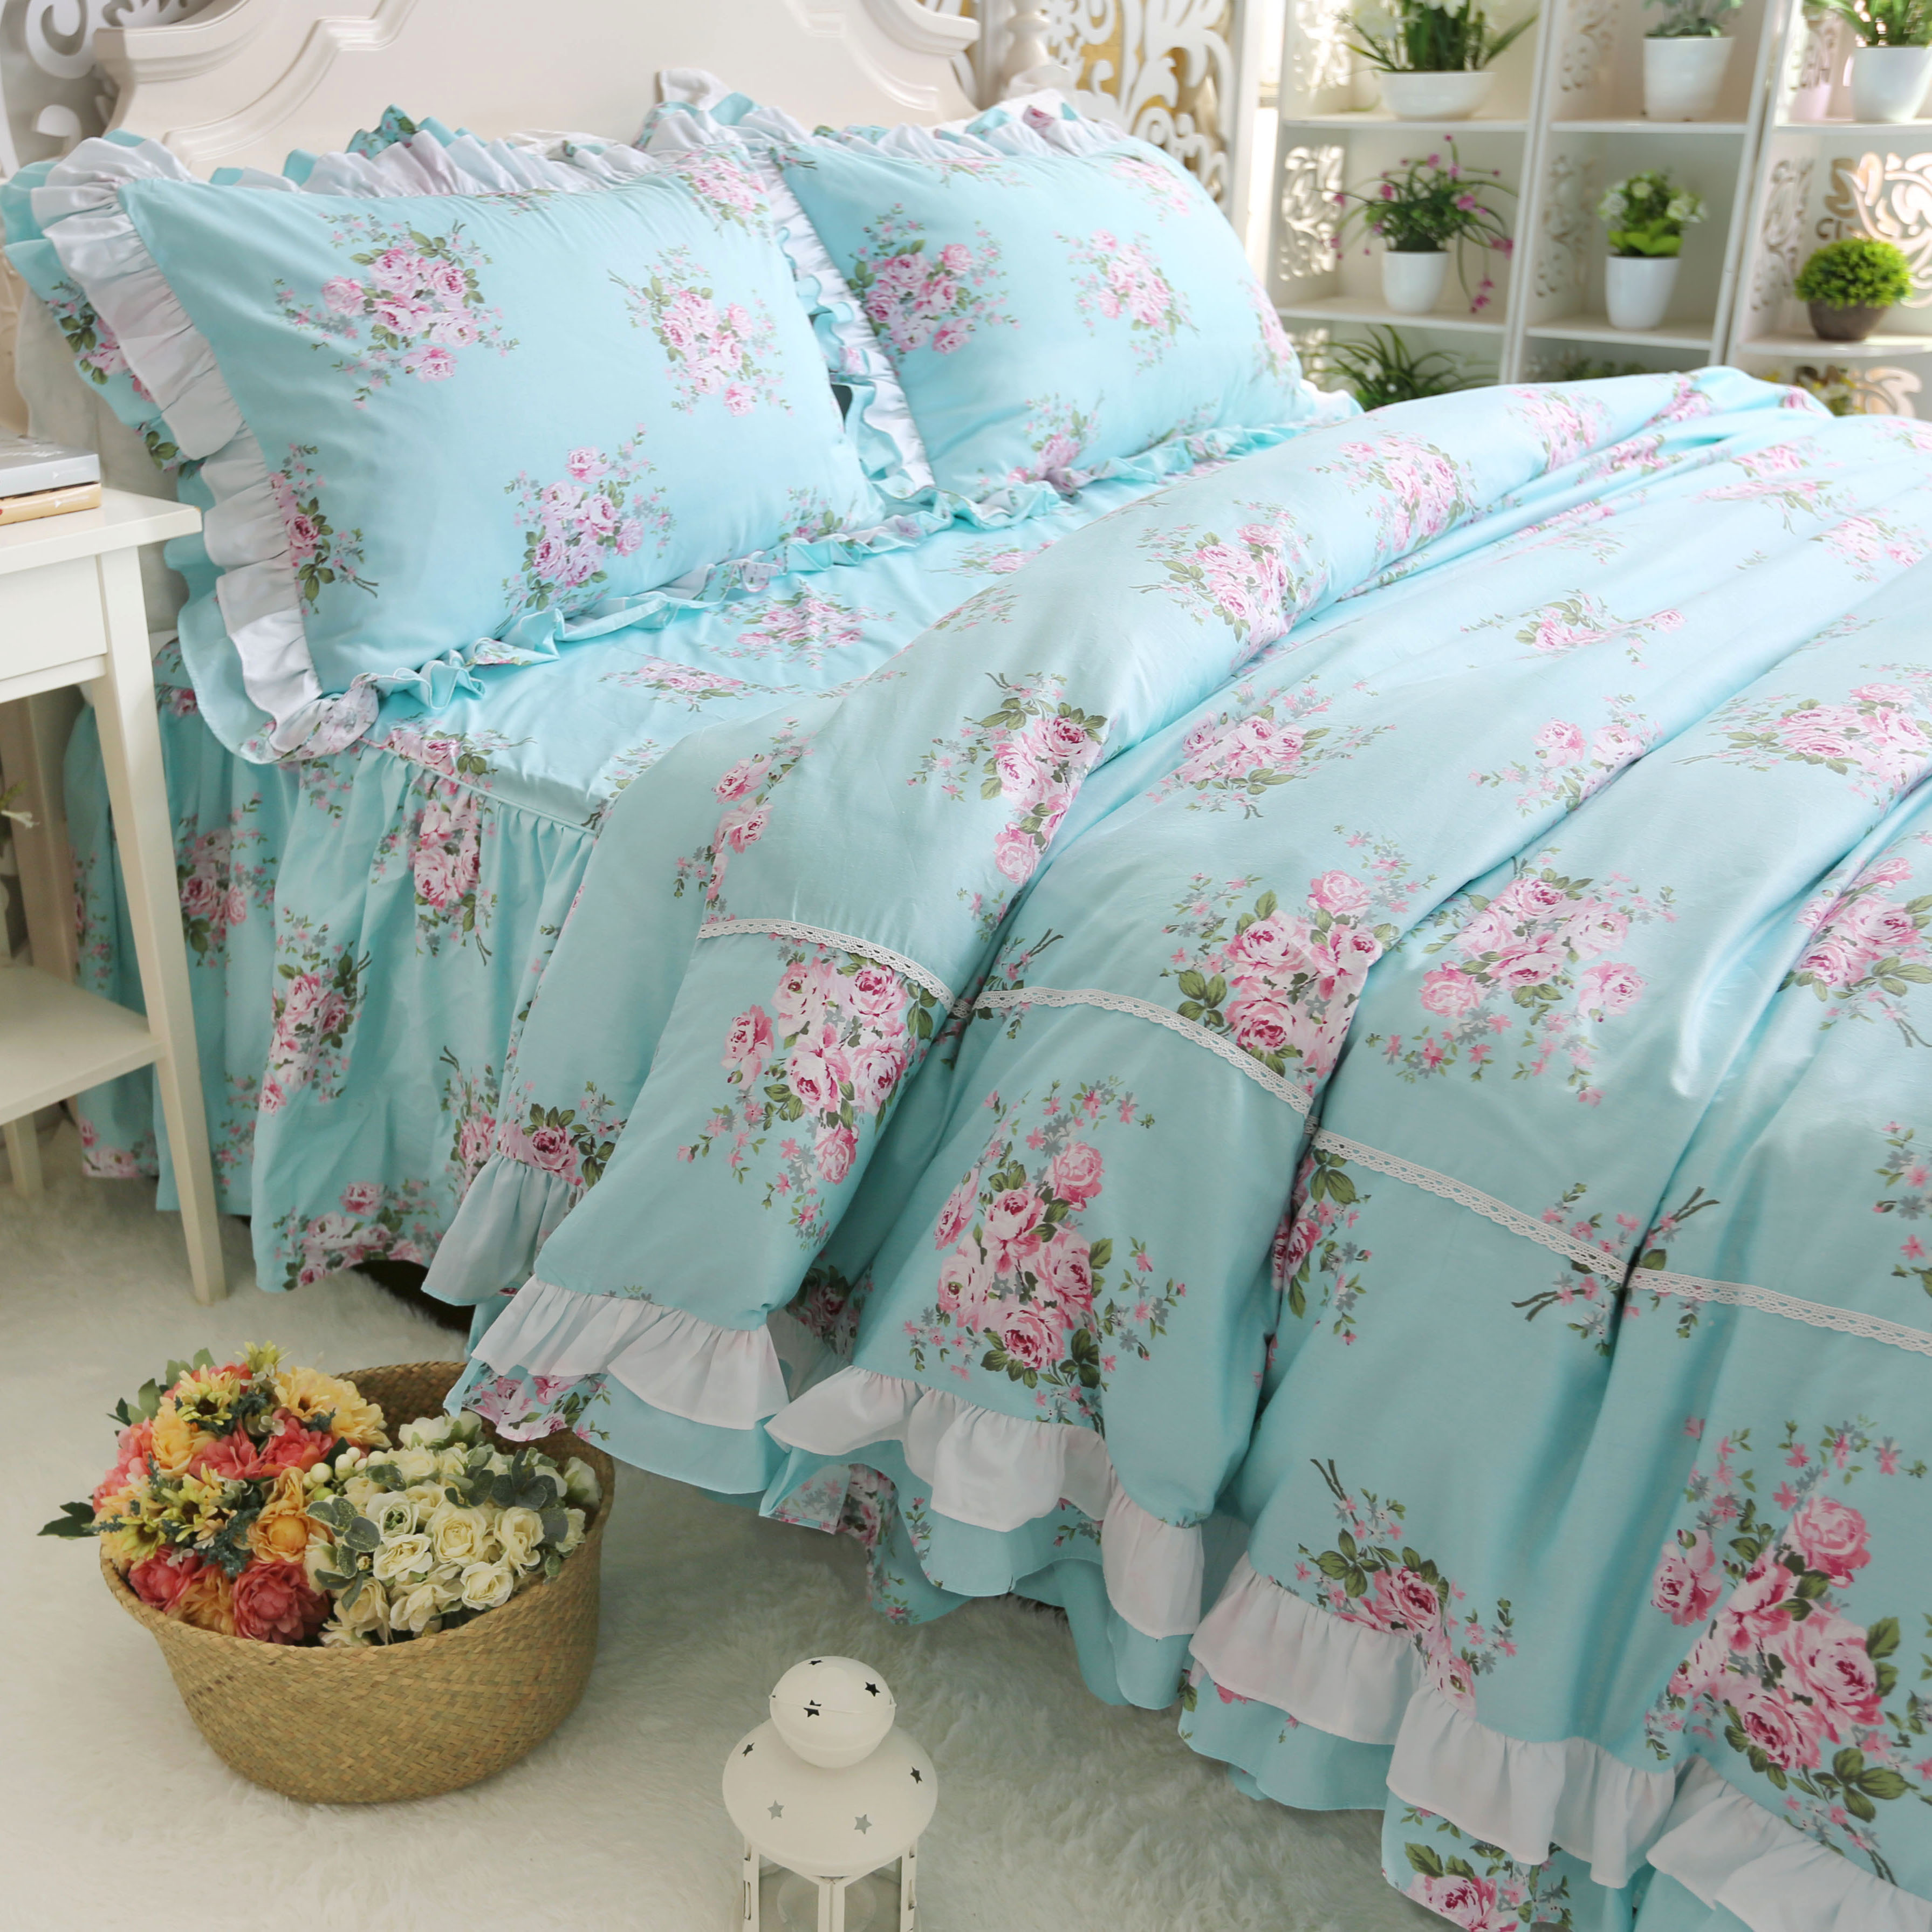 Cotton bedding set twill ruffled quilt cover pillowcase plant flower and bird print with bleaching bed spreadCotton bedding set twill ruffled quilt cover pillowcase plant flower and bird print with bleaching bed spread